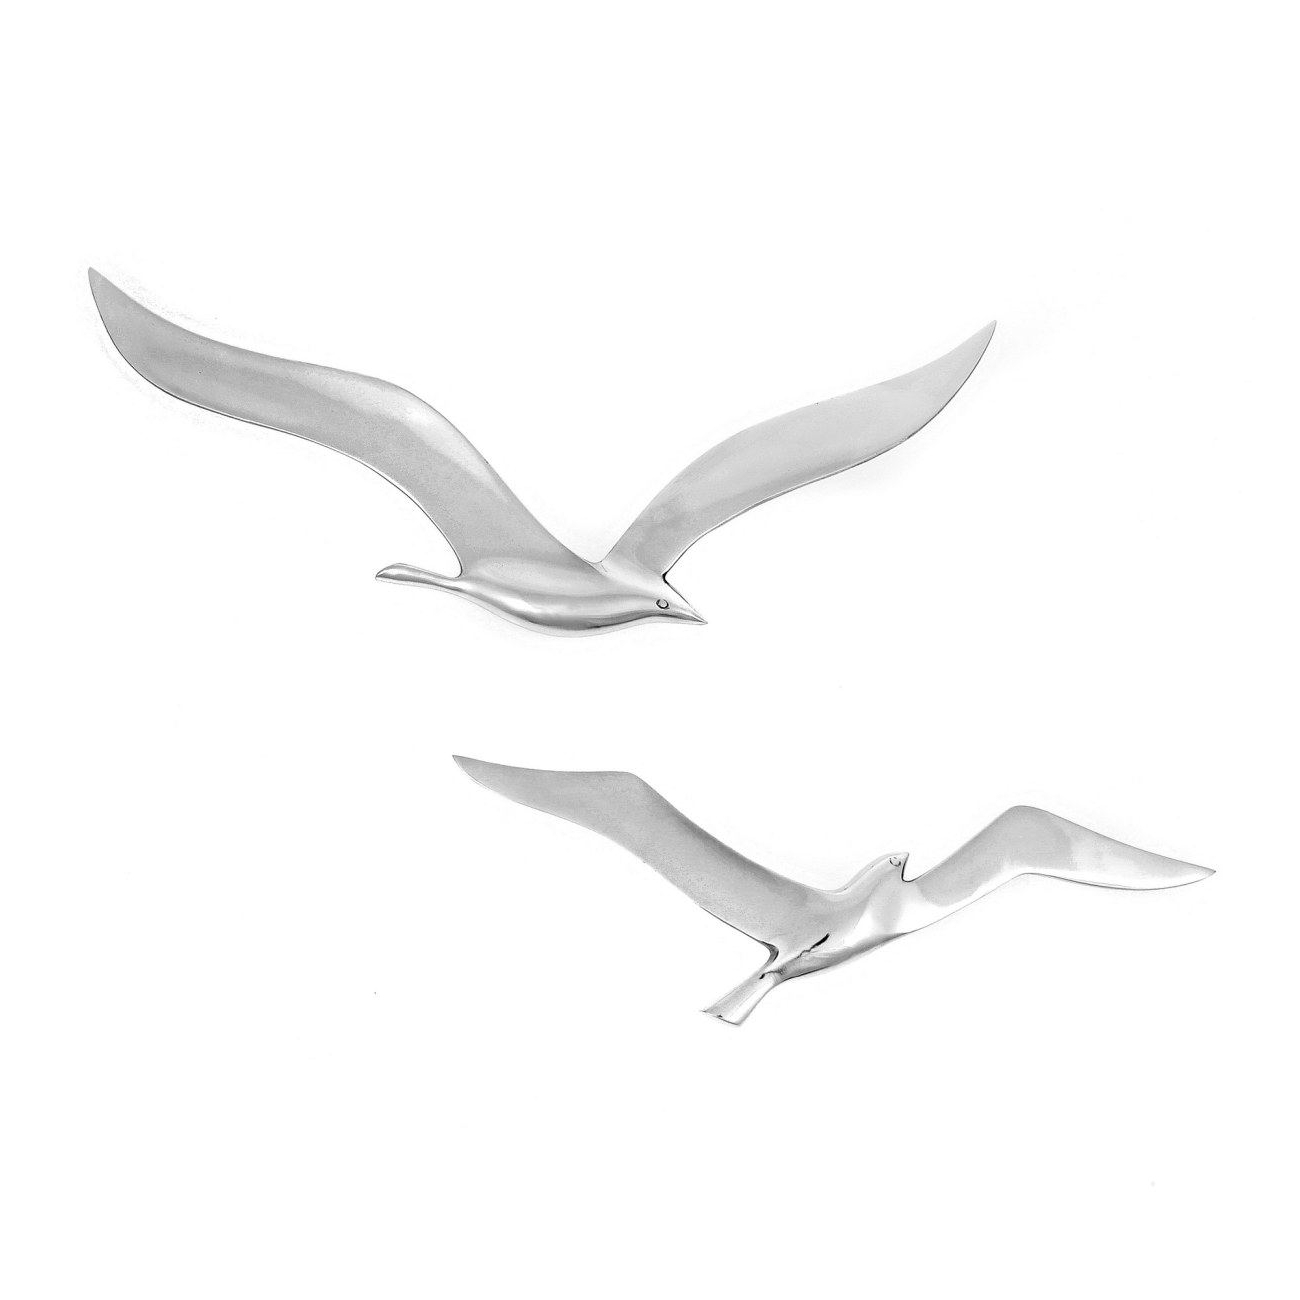 Most Recently Released Seagull Metal Wall Art Pertaining To Seagull Bird – Handmade Metal Wall Art Decor – Silver, Small 27Cm (View 3 of 15)